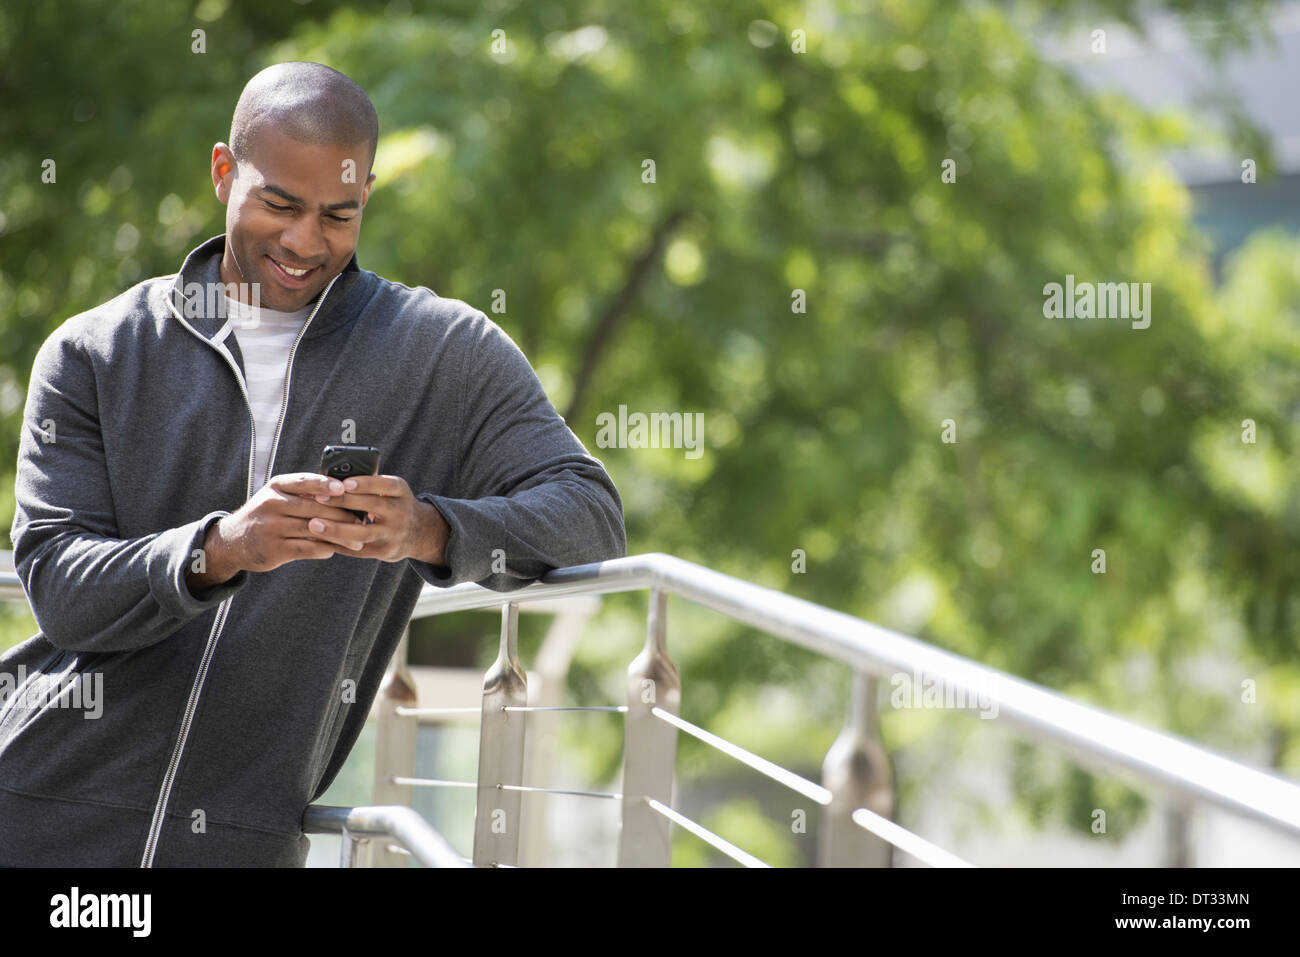 A man in a sweatshirt looking at his smart phone - Stock Image